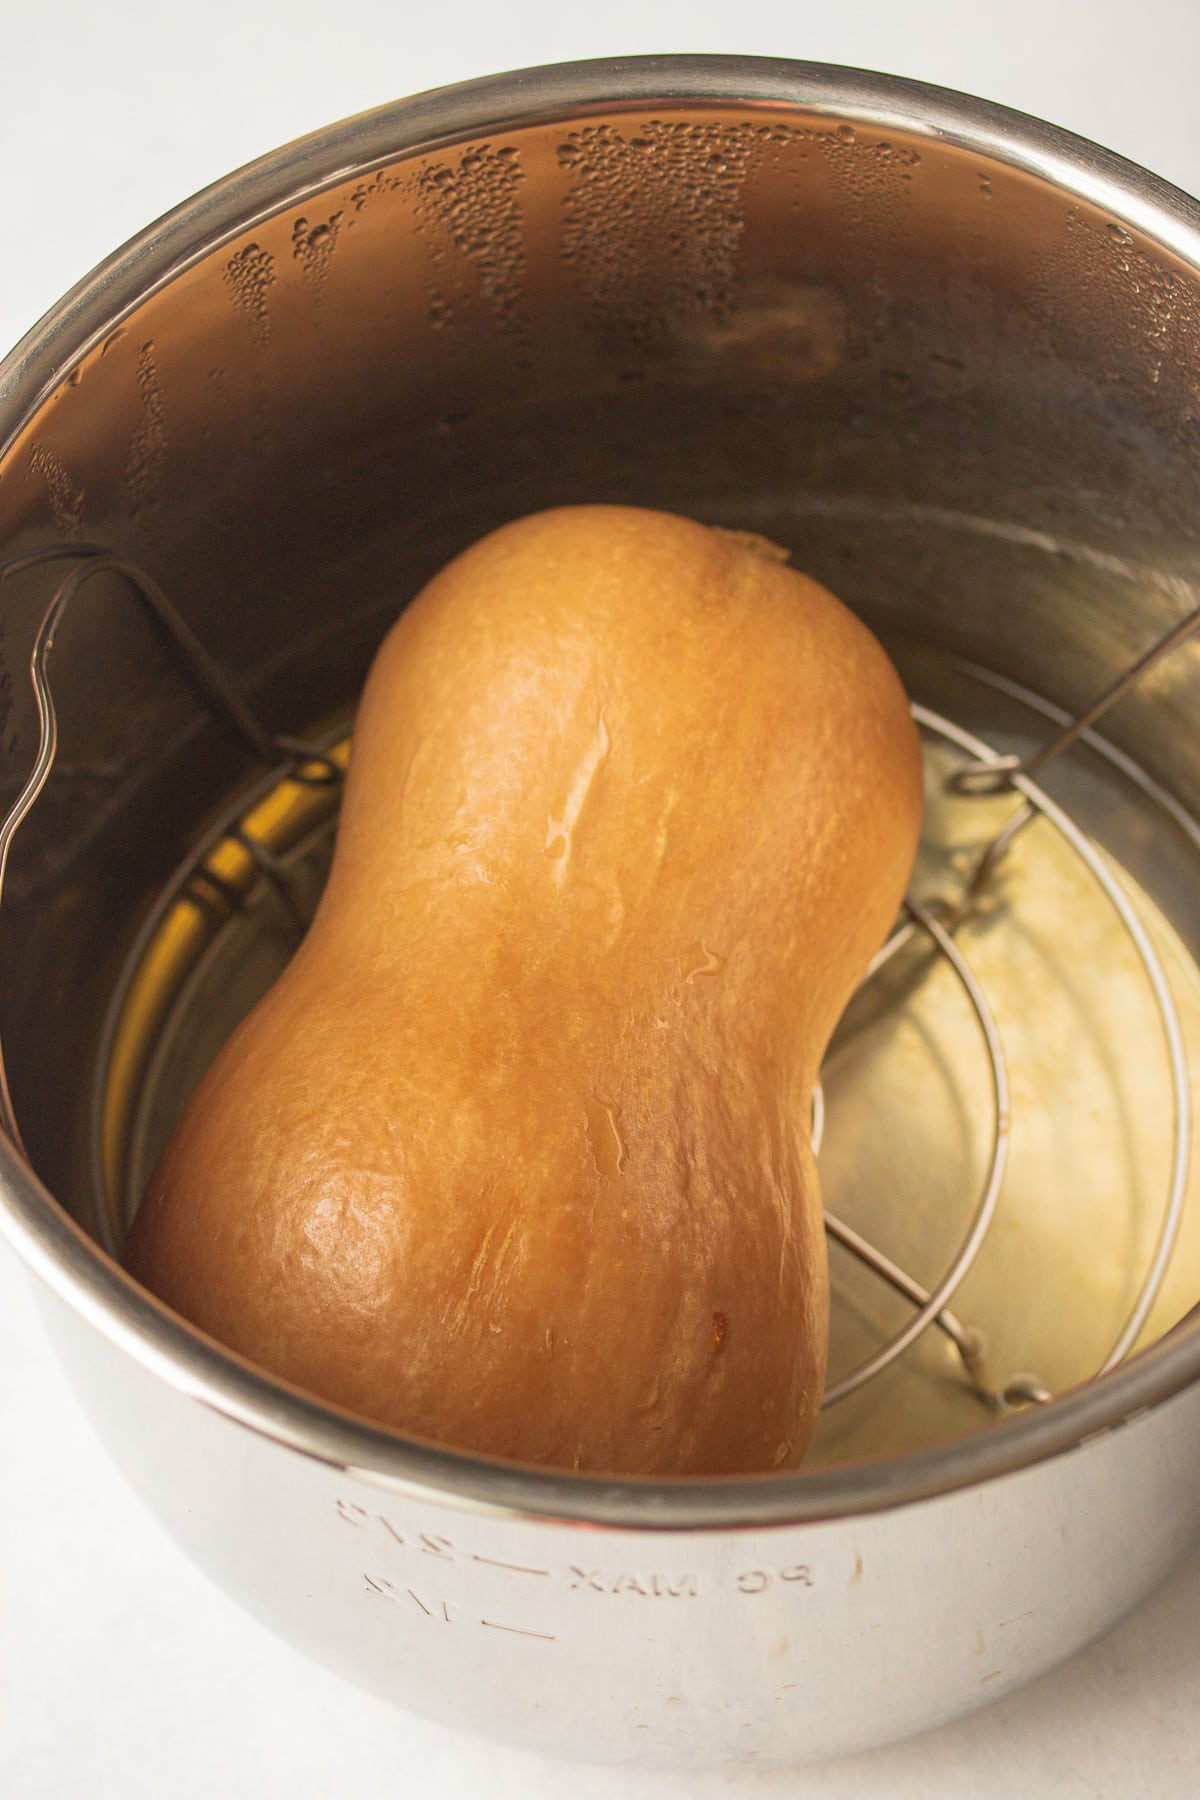 butternut squash cooked whole inside of an instant pot pressure cooker